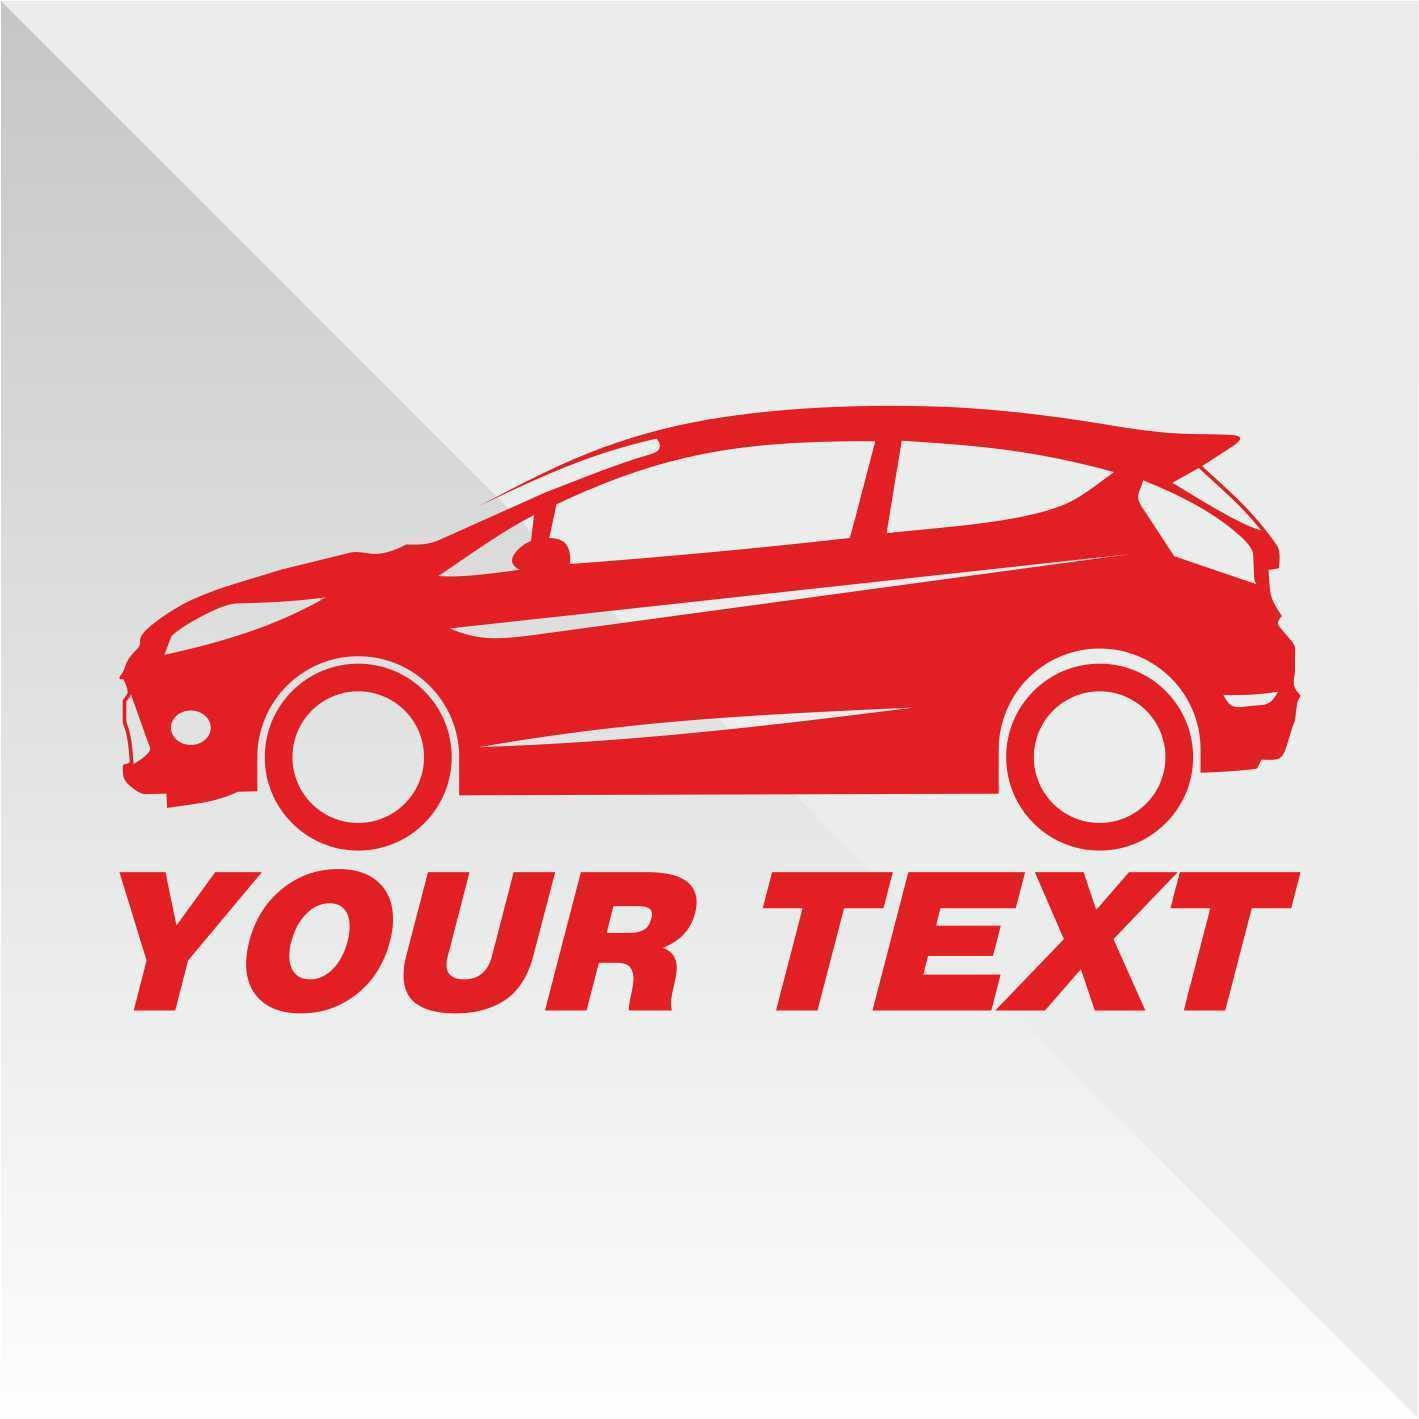 Erreinge Sticker Ford Fiesta Rosso Red Rouge Rojo Rot Down